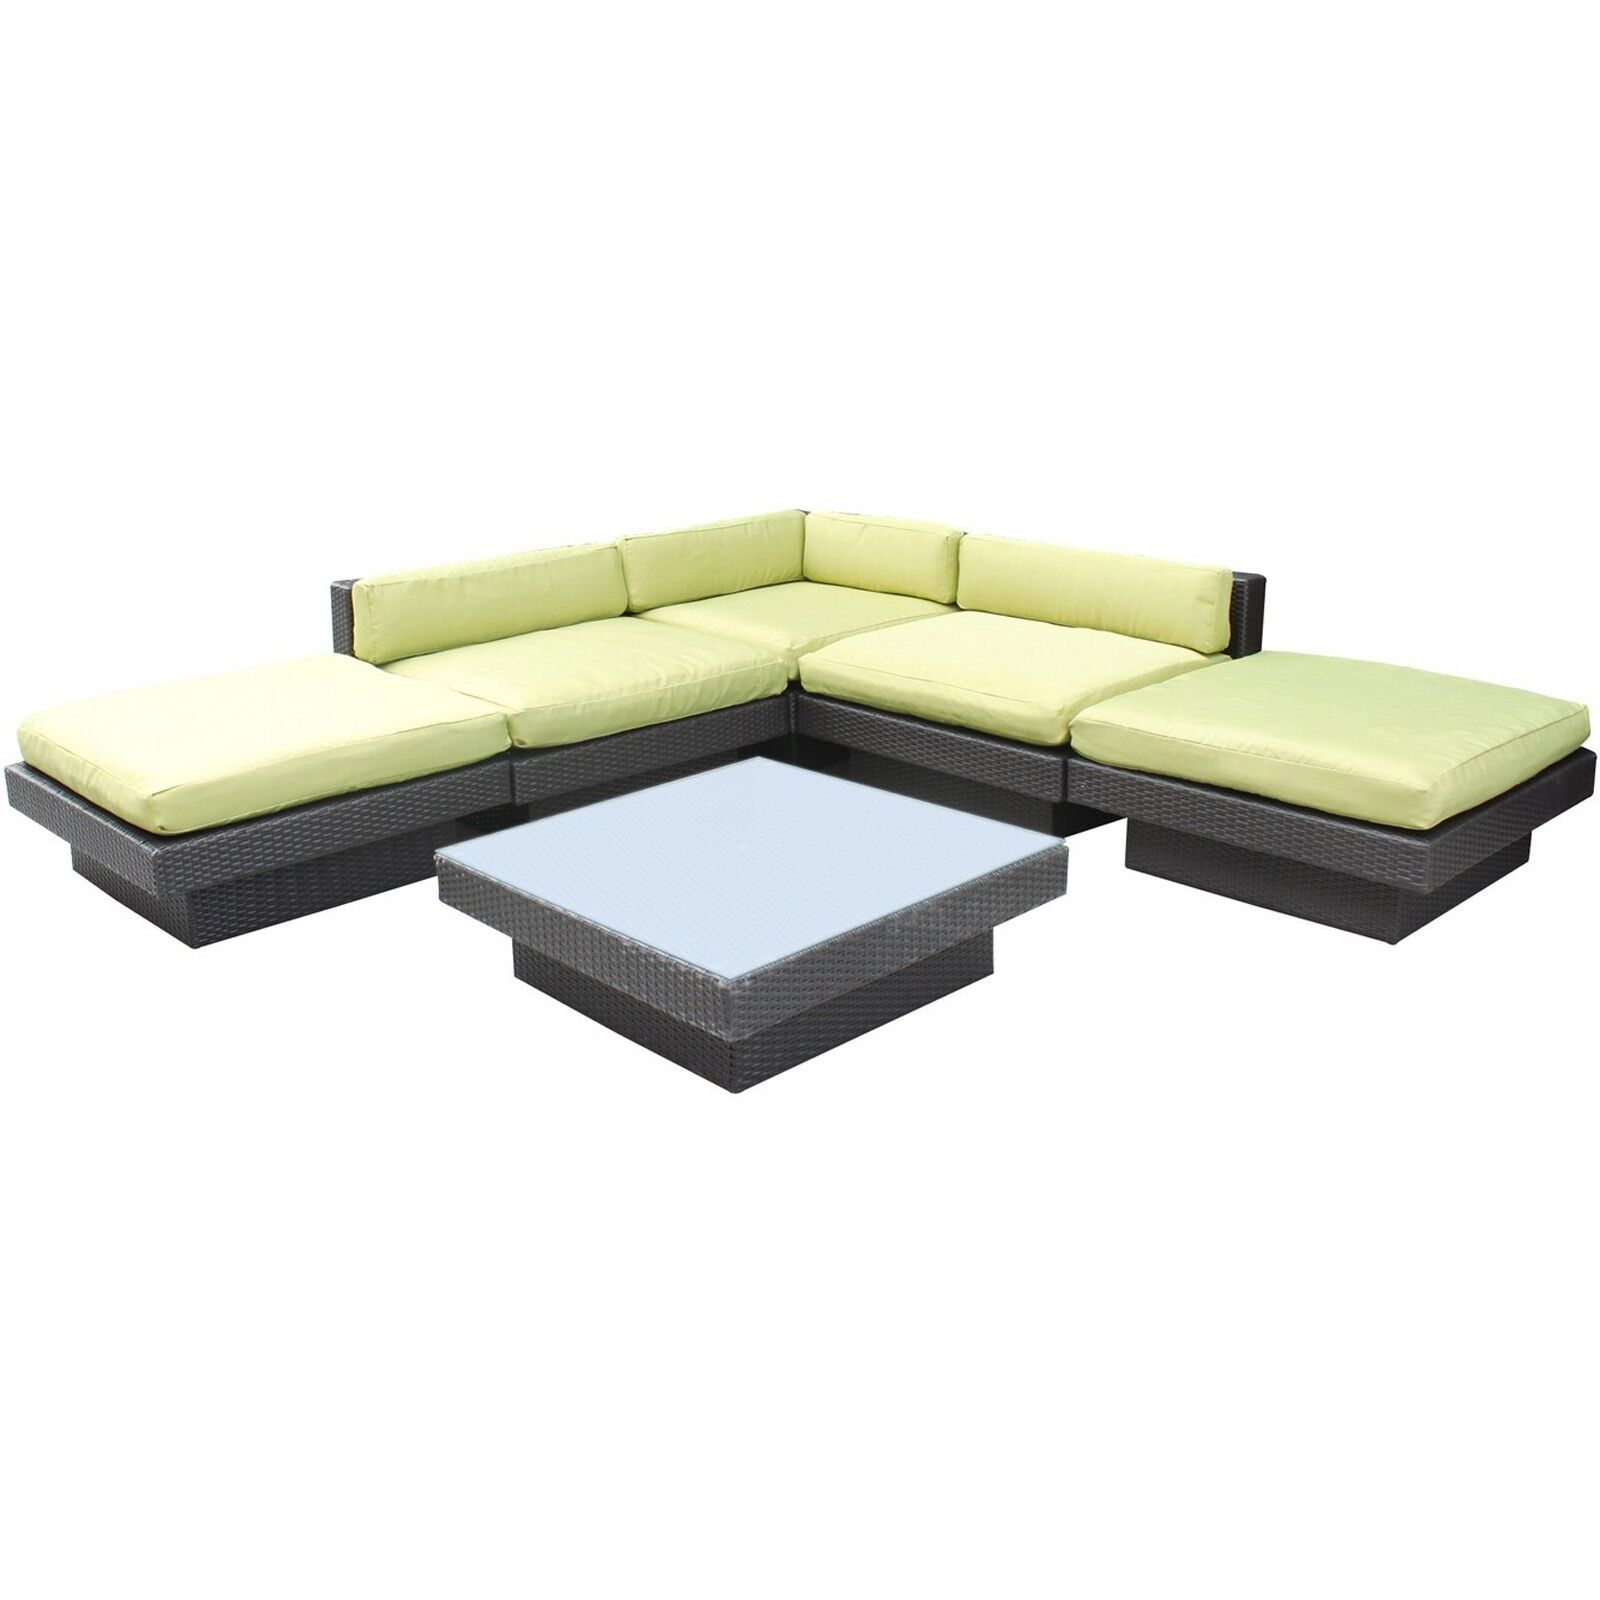 Luxury 6 Piece Rattan Sectional Set with Cushions Color: Espresso, Fabric: Peridot